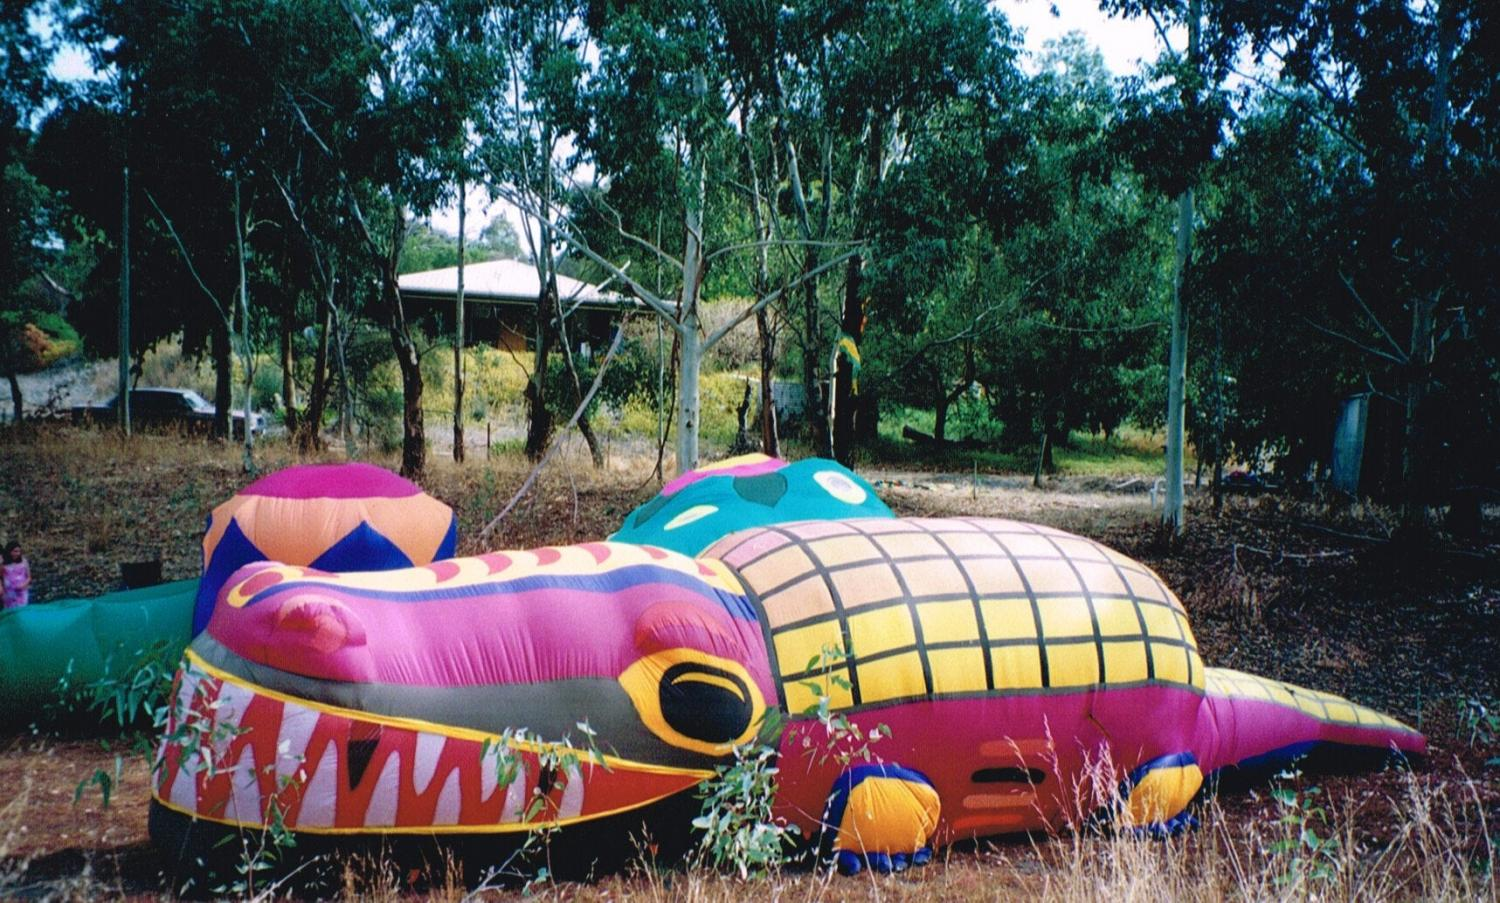 Giant inflatable crocodile - Evelyn Roth